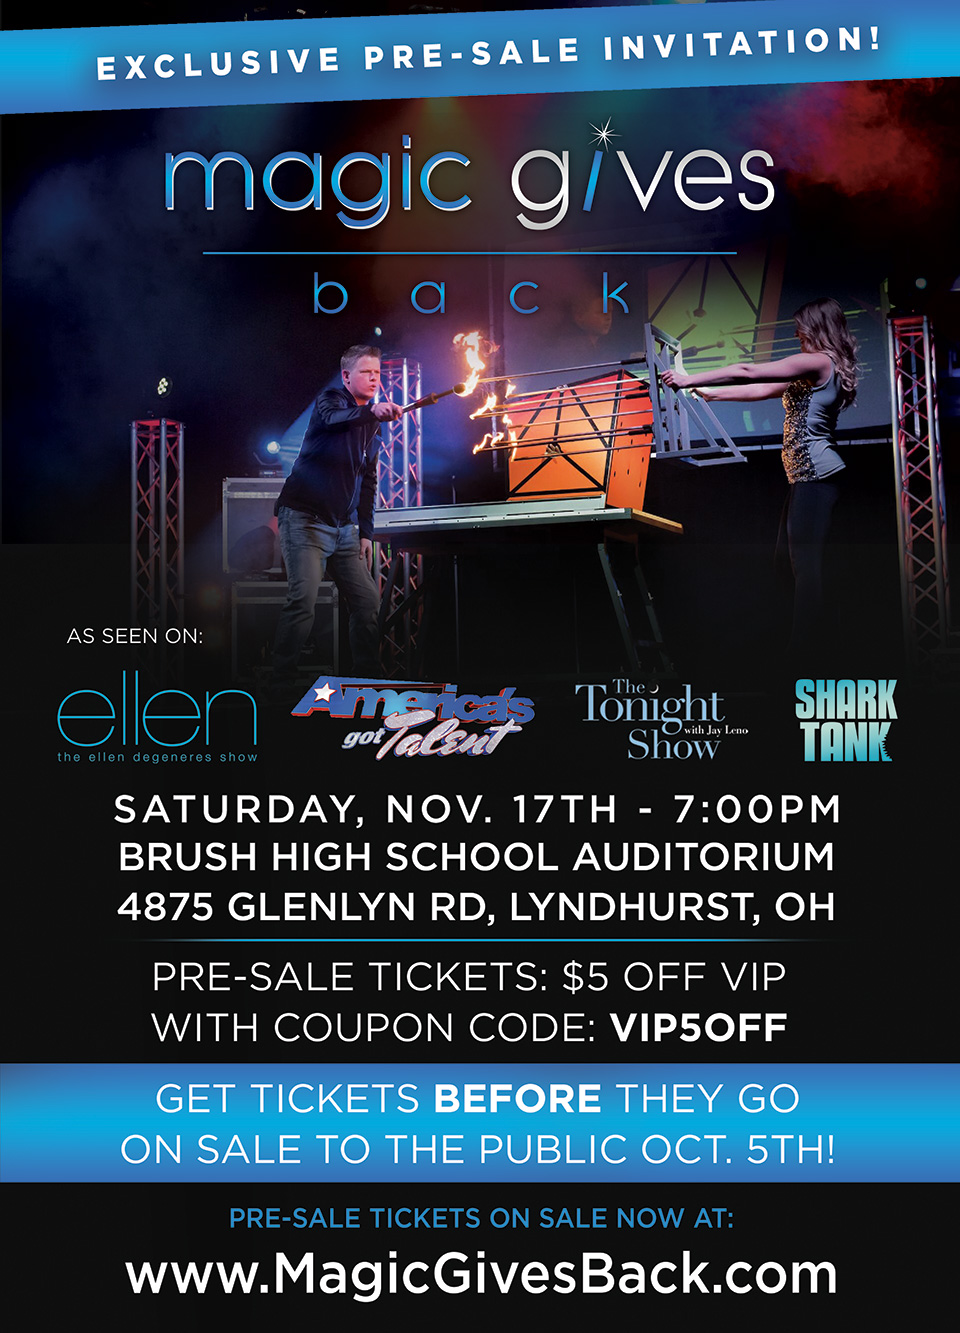 Flier: Magic Gives Back in the Brush High School Auditorium - Exclusive Ticket Pre-Sale Invitation - November 17th 2018 - City of Lyndhurst, Ohio